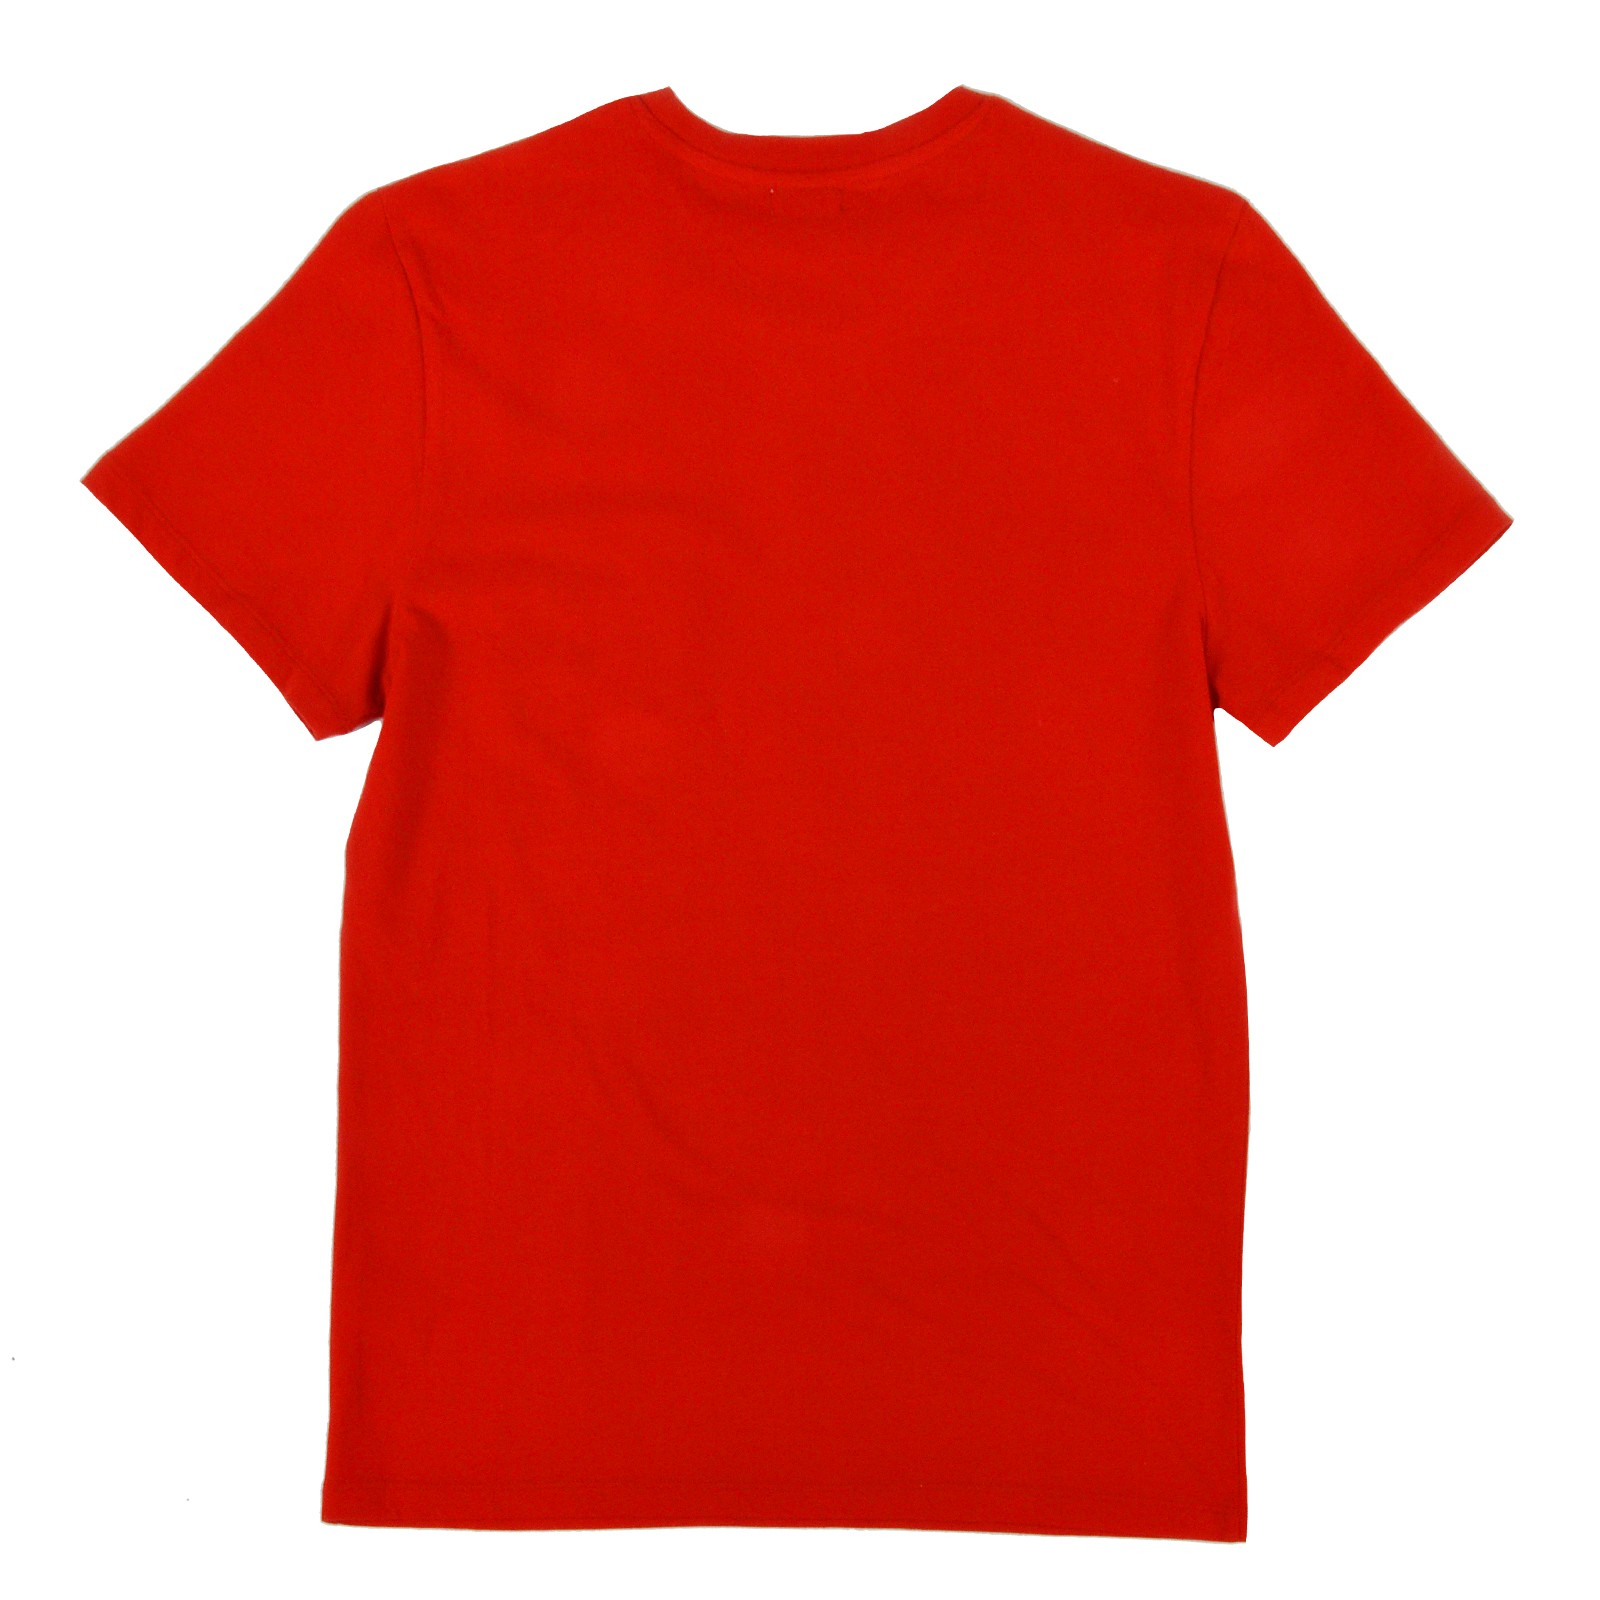 Red T Shirt Is Shirt